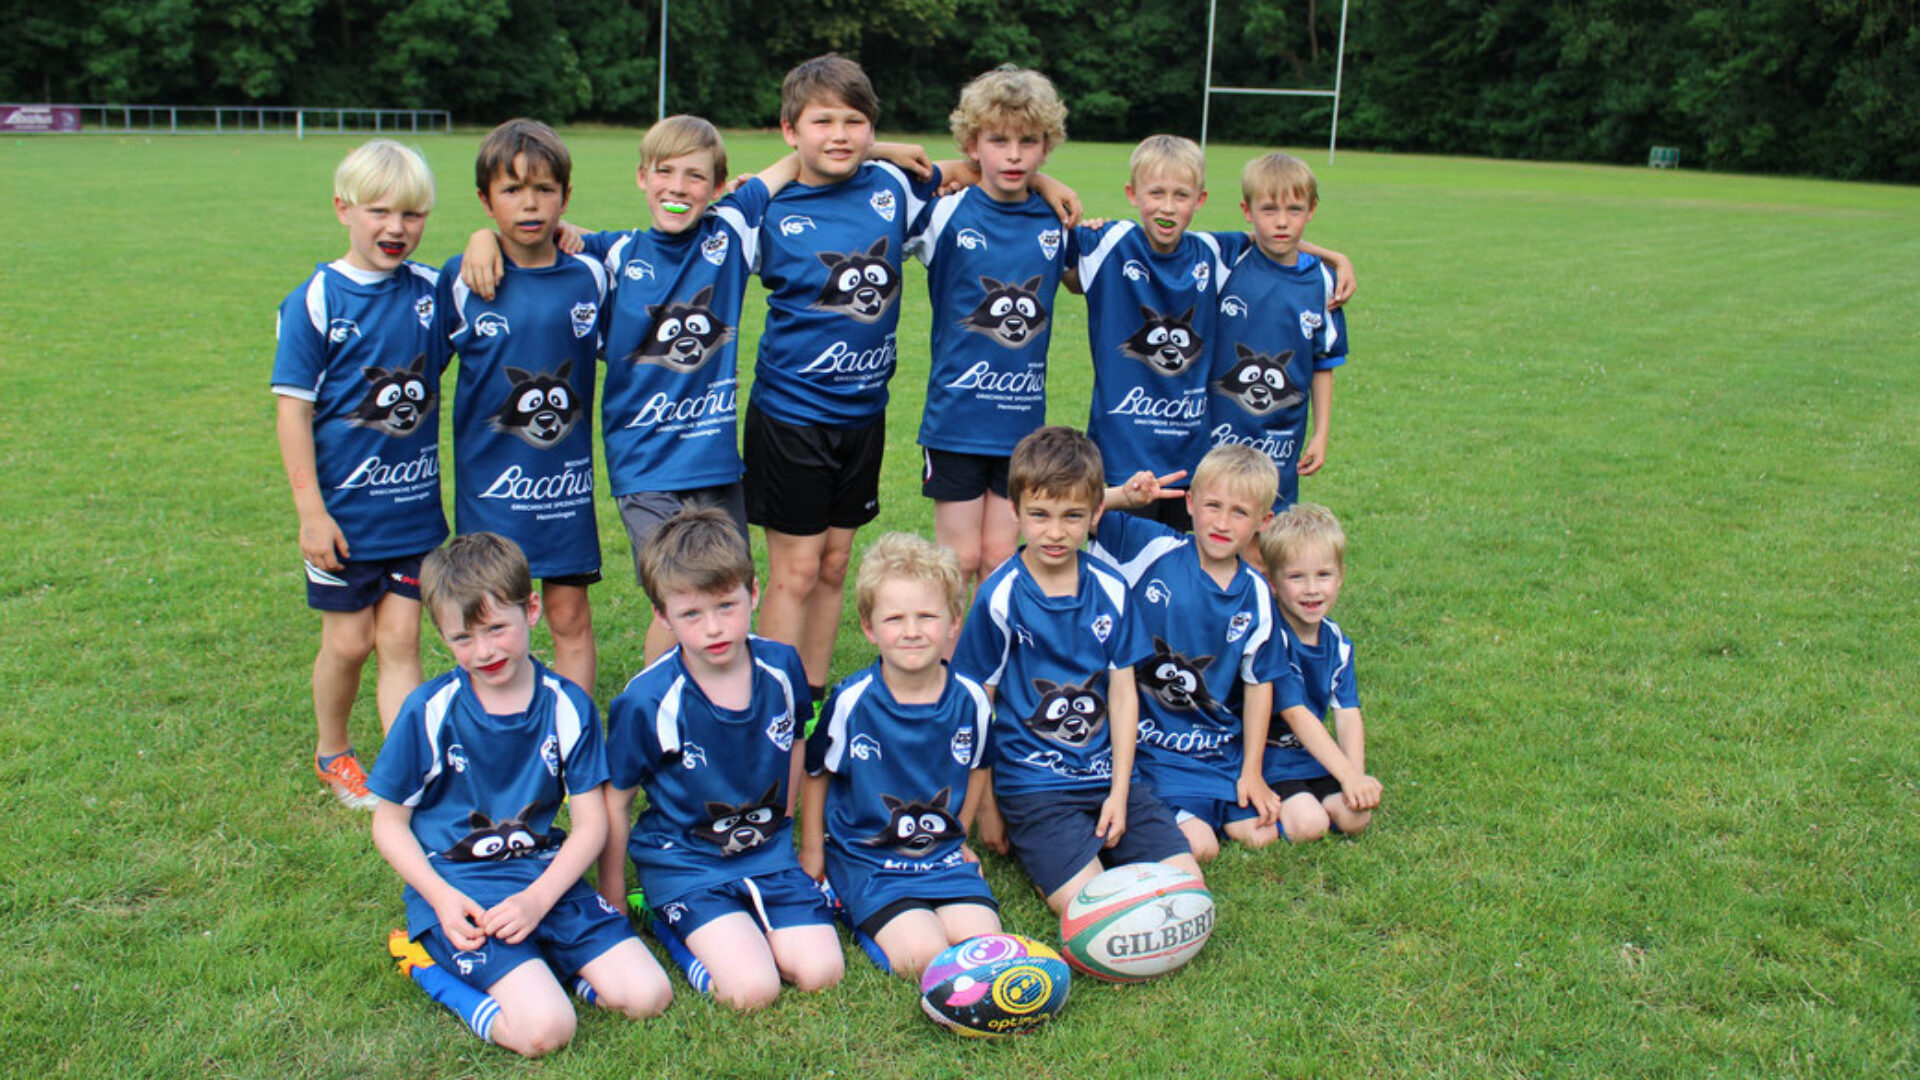 rugby4kids